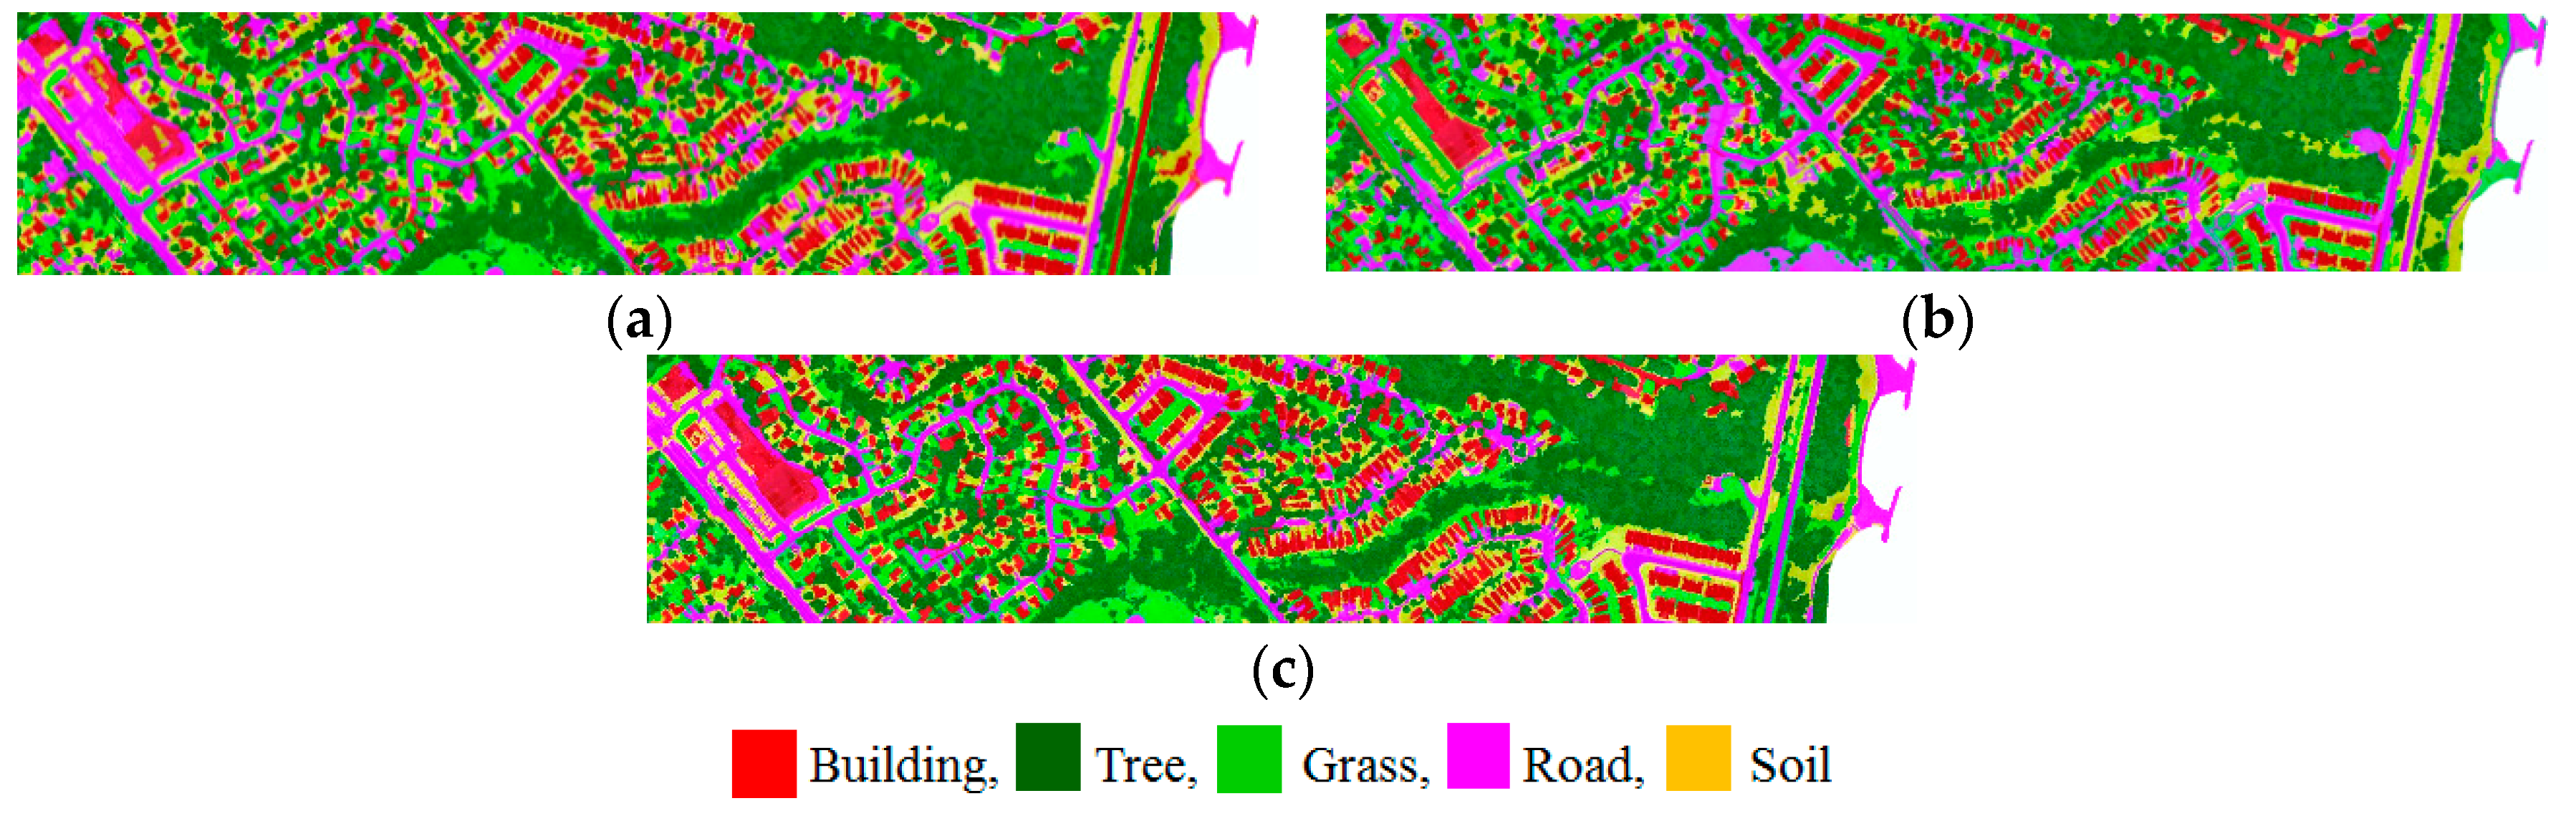 Applied Sciences | Free Full-Text | Analysis of Land Cover